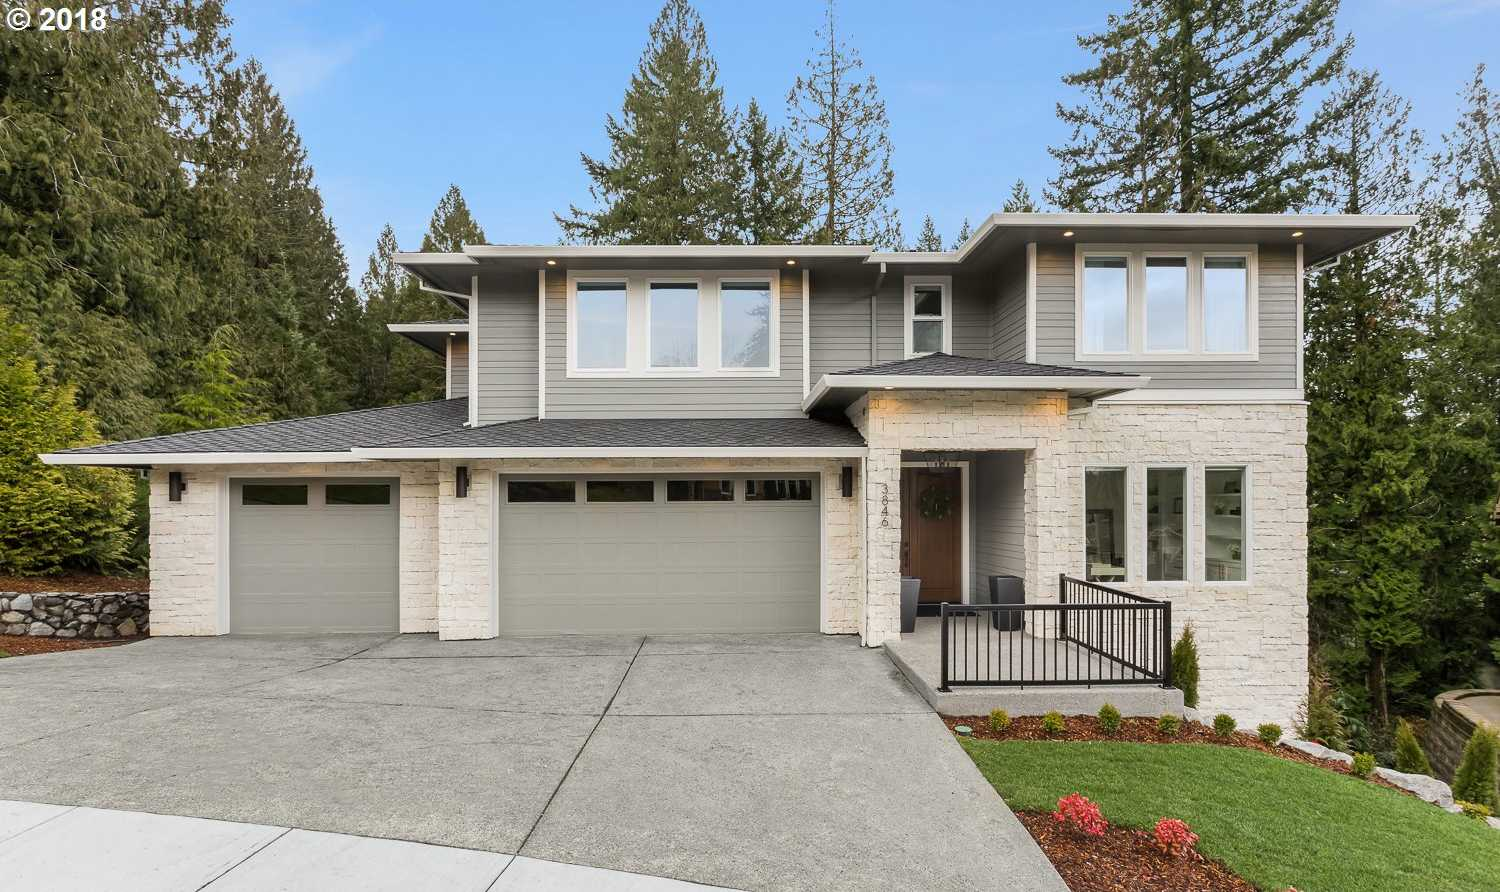 $754,900 - 5Br/4Ba -  for Sale in Gresham